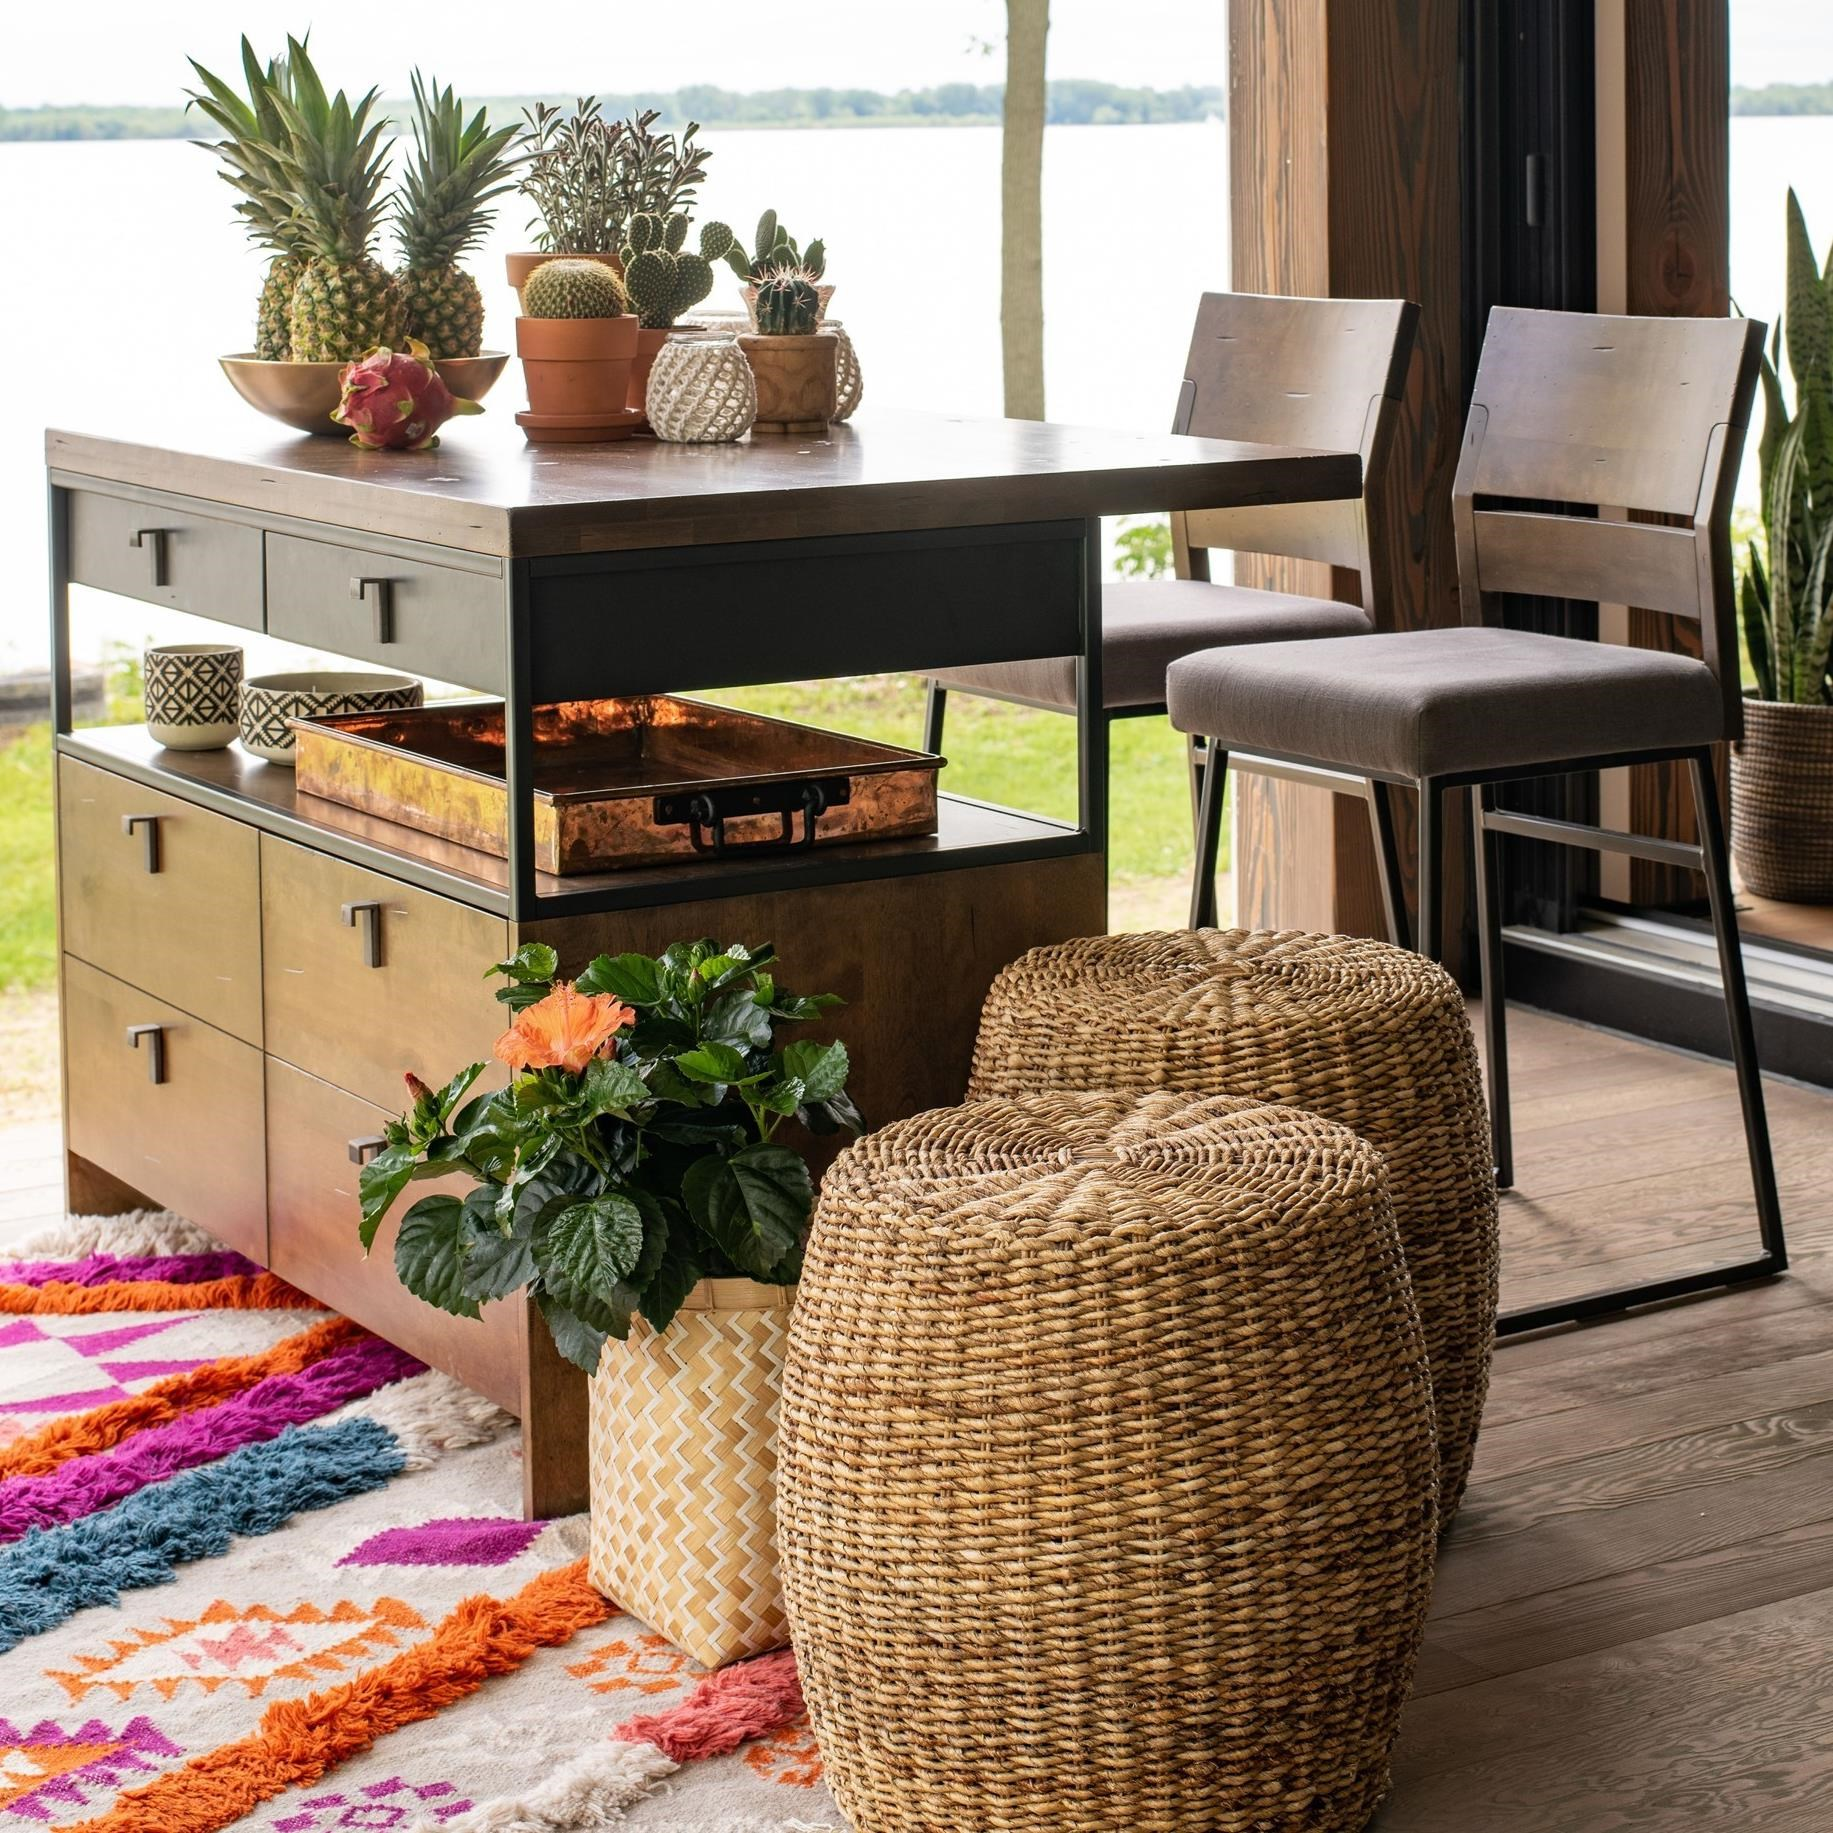 Loft - Custom Dining Customizable Island and Stools by Canadel at Dinette Depot